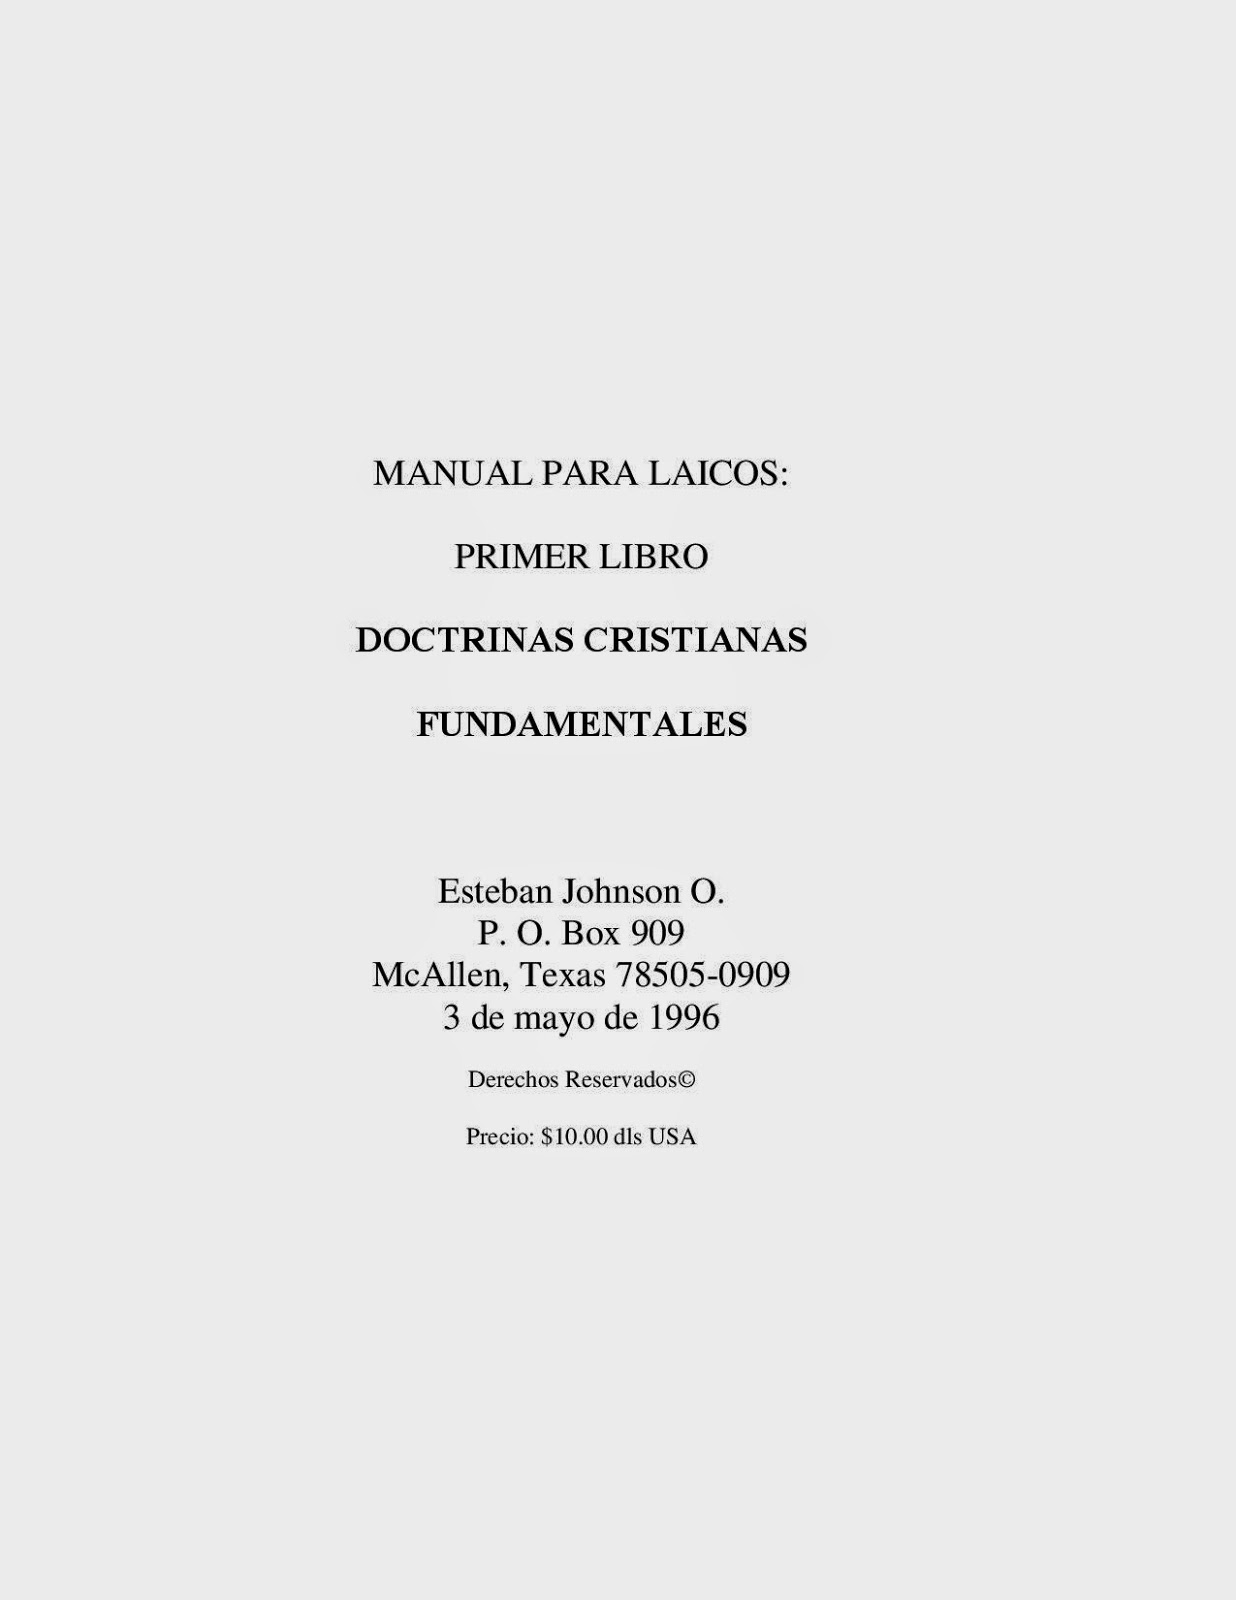 Esteban Johnson O.-Manual Para Laicos-Doctrinas Cristianas Fundamentales-